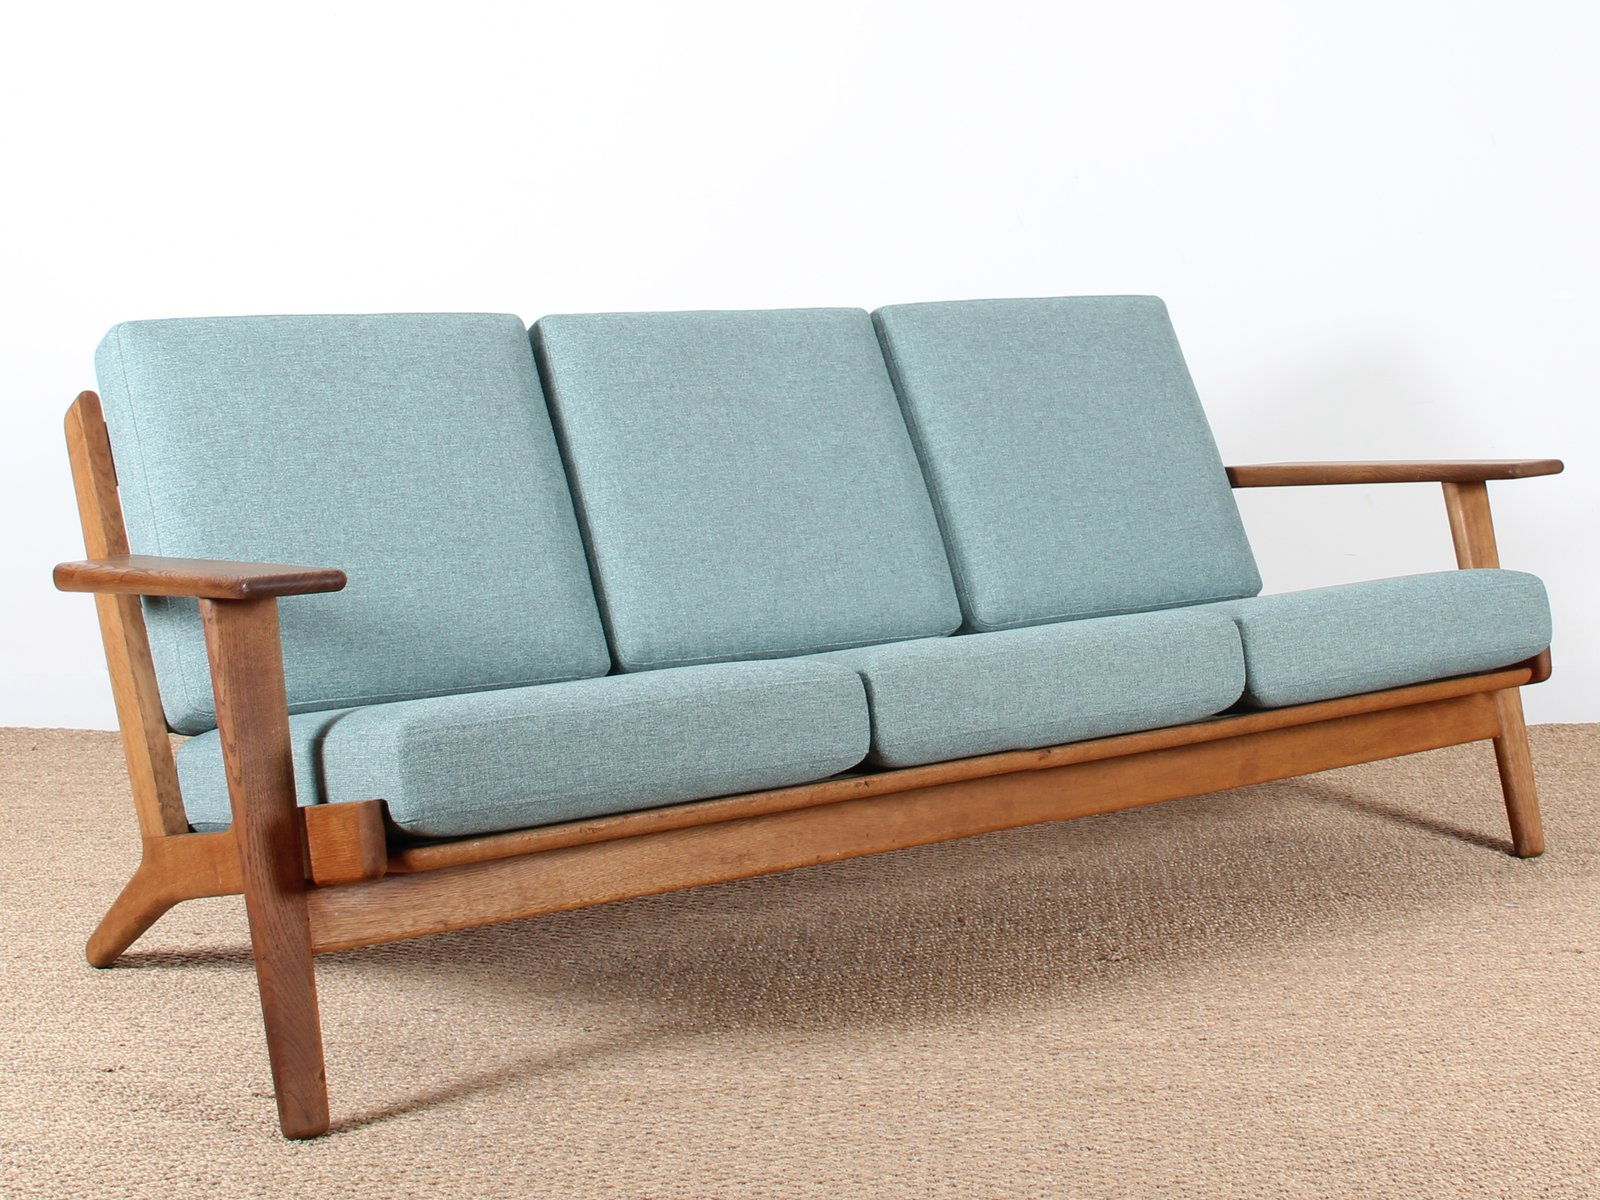 Ge 290 3 seater by hans j wegner for getama 1960s for for Canape scandinave